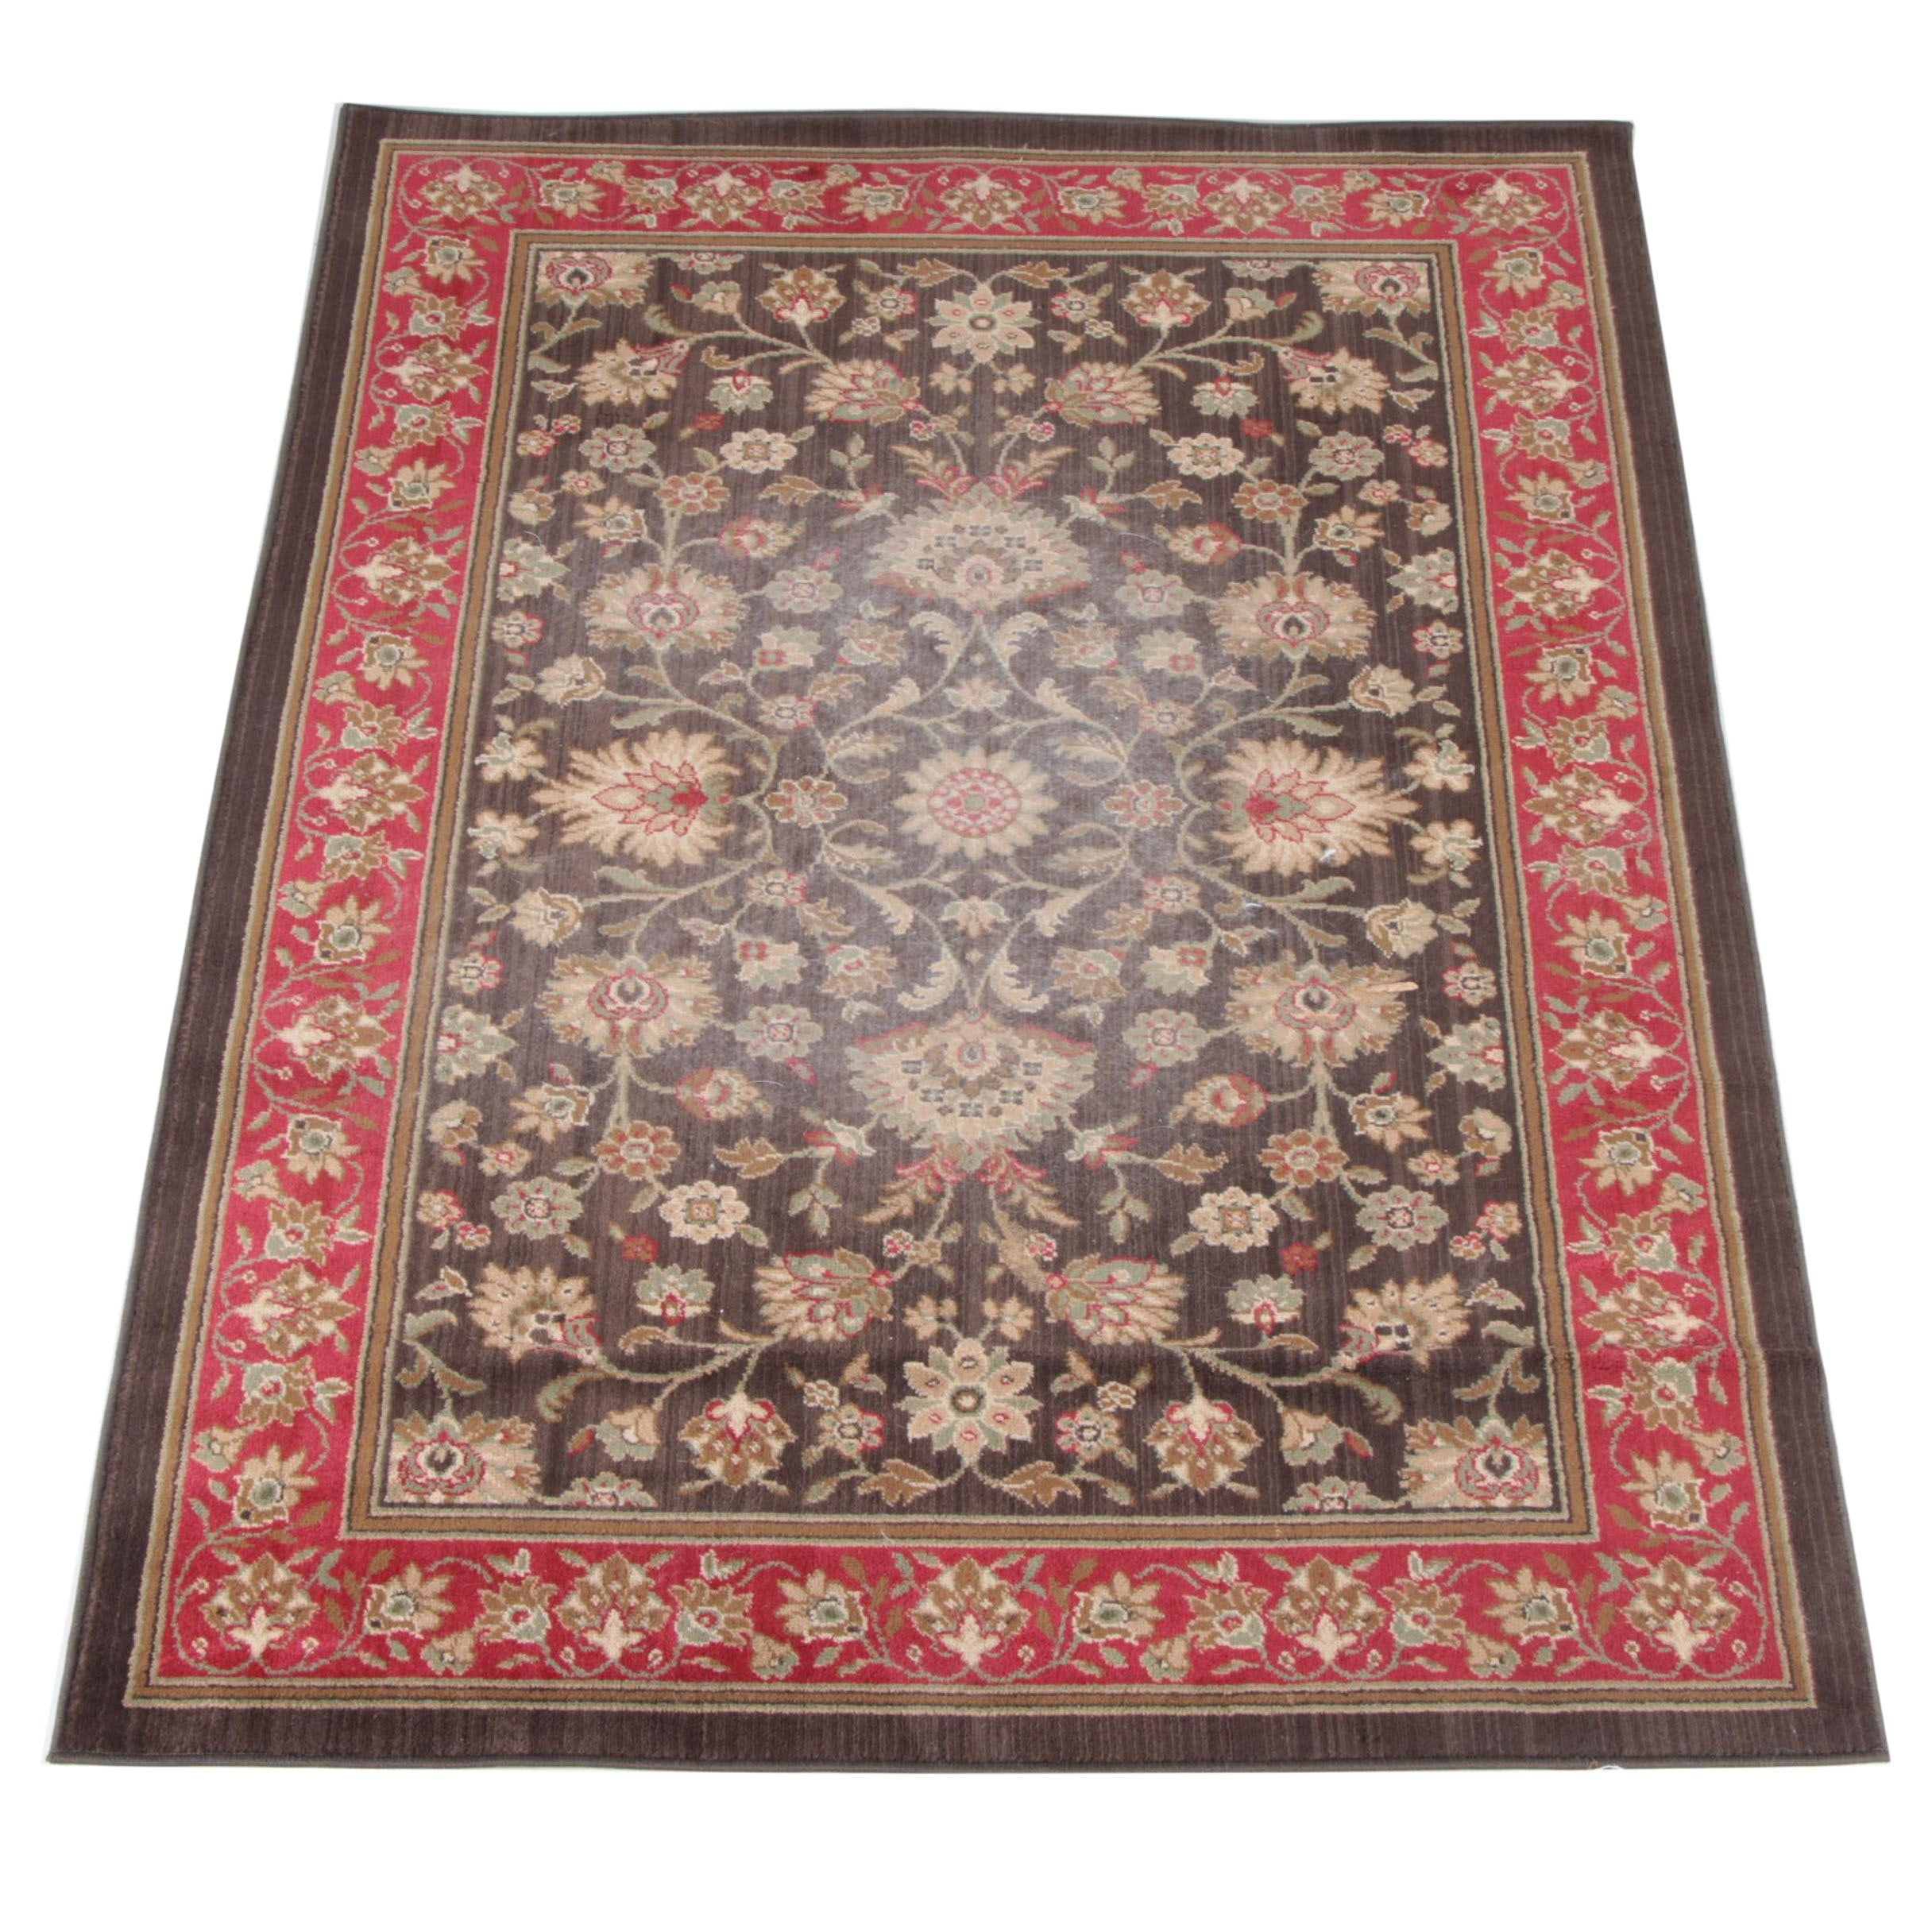 Power-Loomed Indo-Persian Style Wool Area Rug